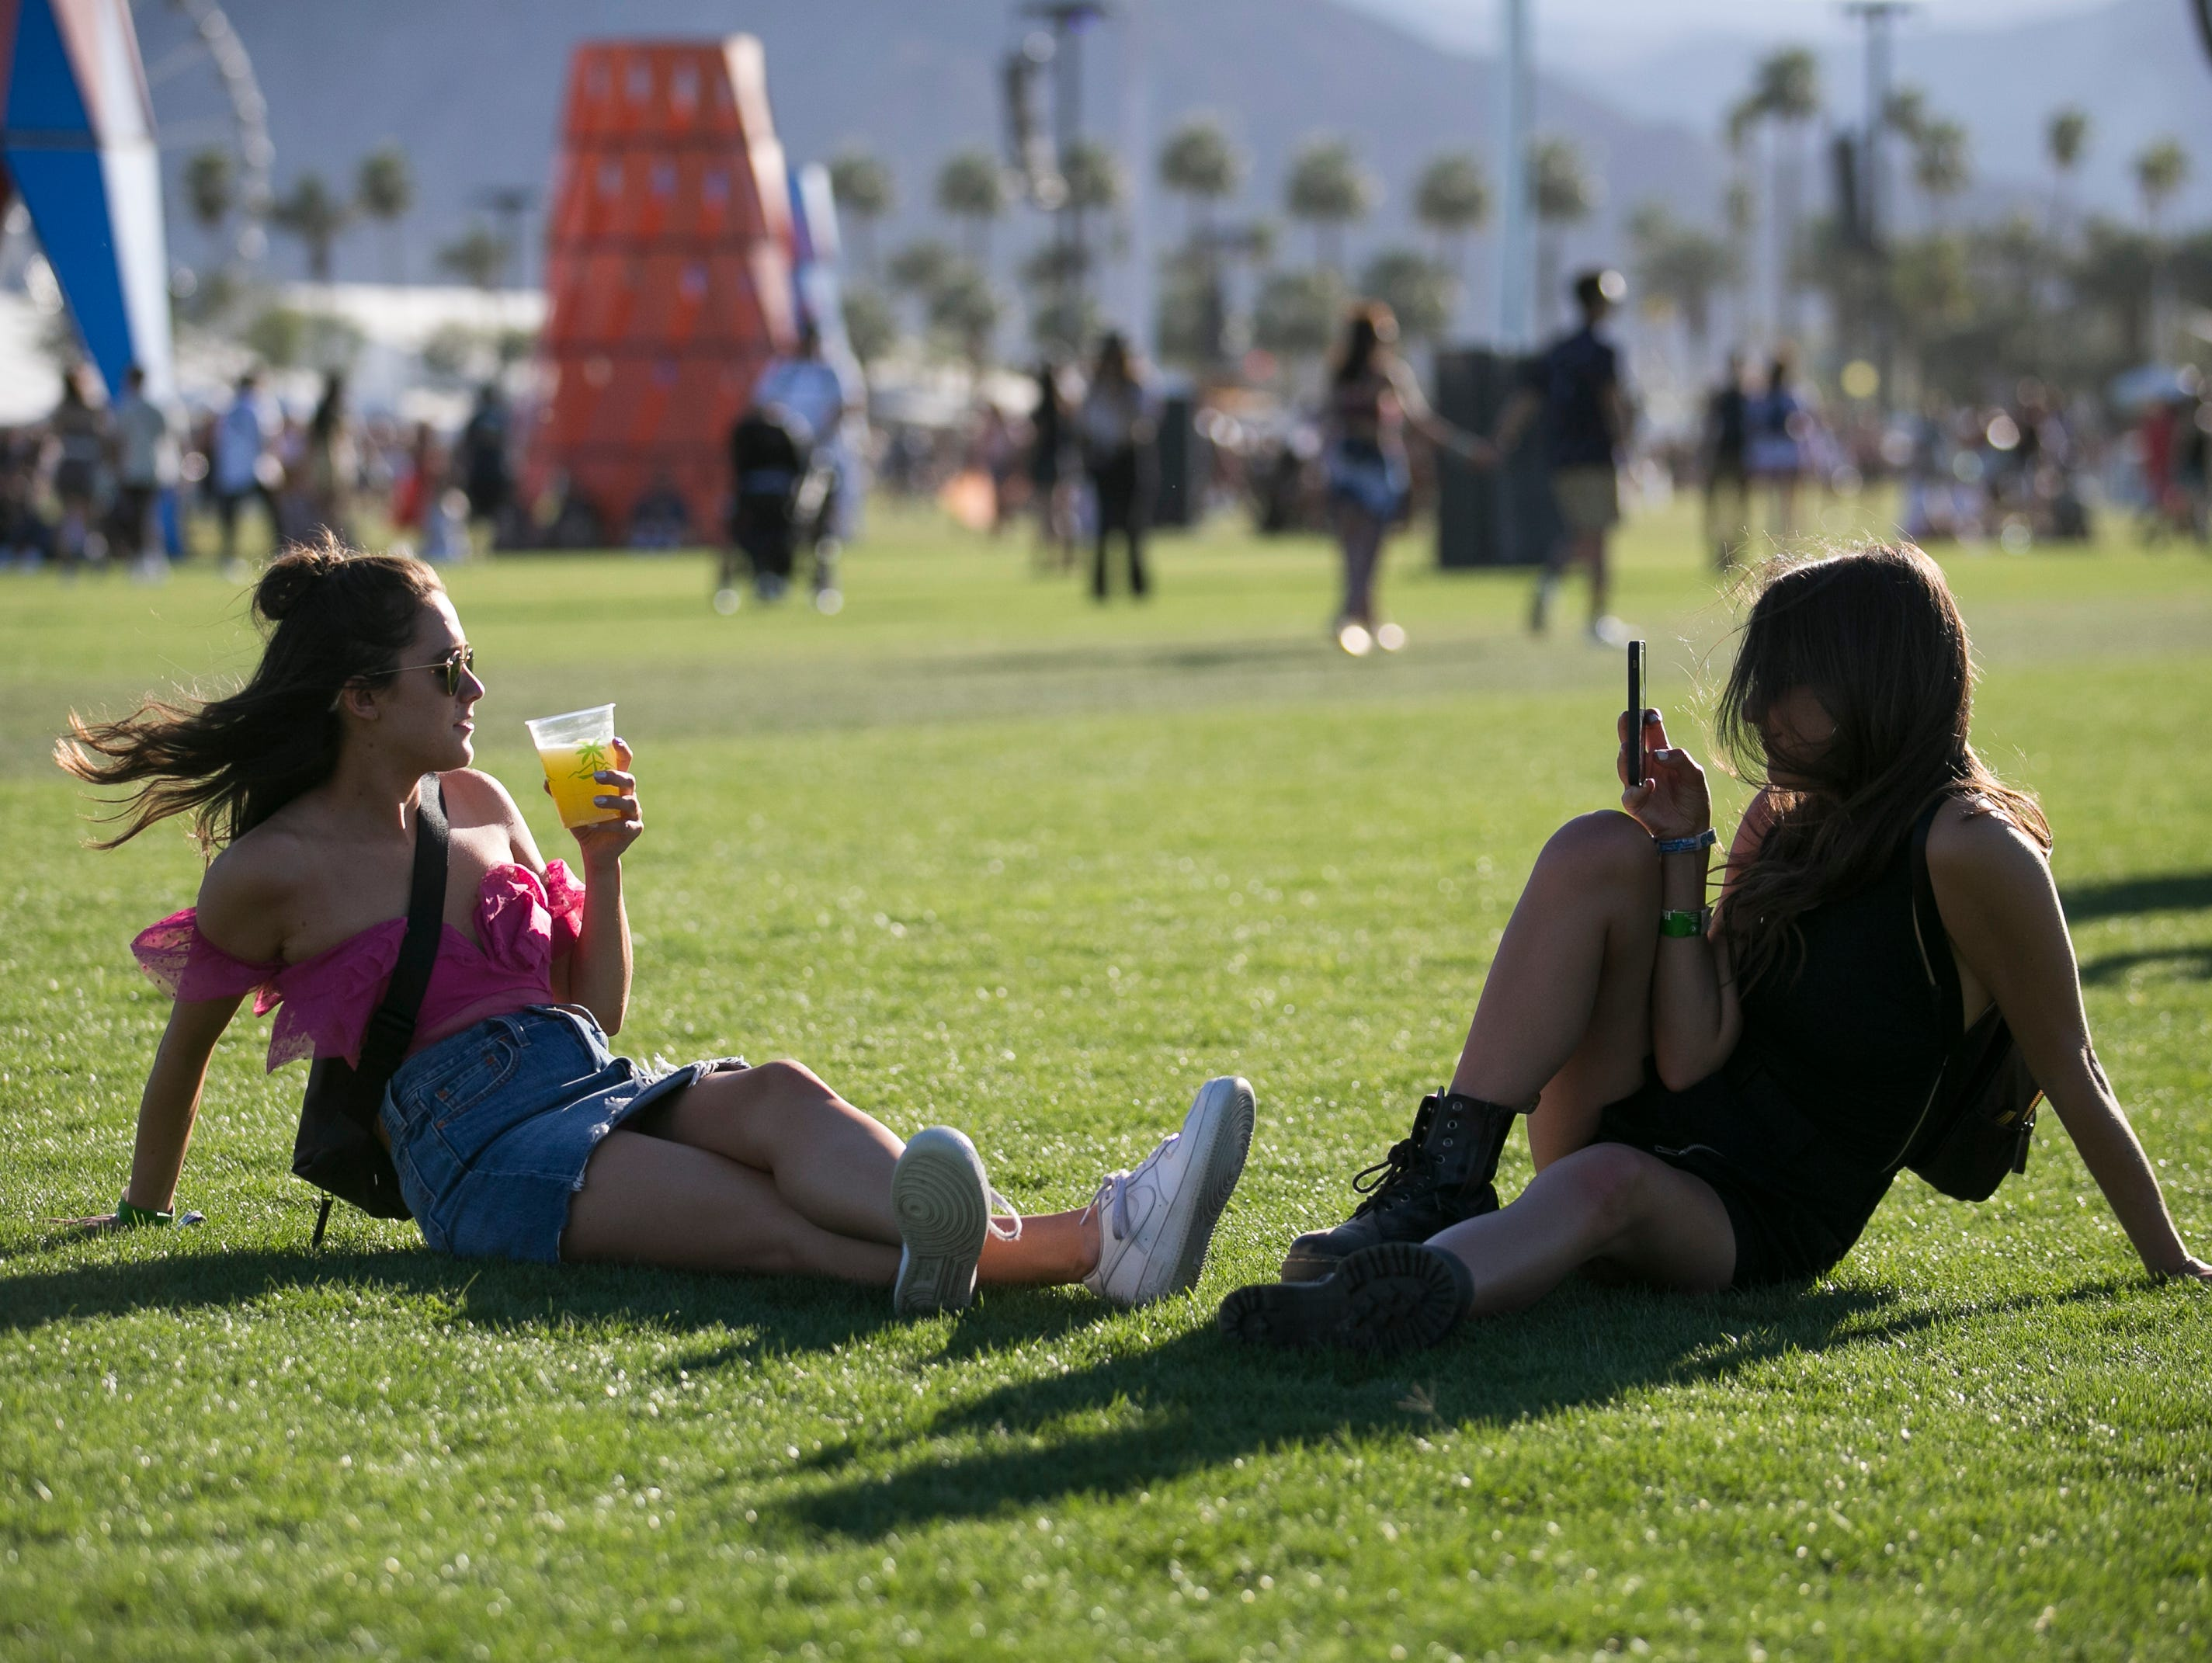 Savanna Stephens (left) and Ally Lucchesi (right) both from Los Angeles, sit in the grass at the Coachella Valley Music and Arts Festival in Indio, Calif. on Fri. April 12, 2019.